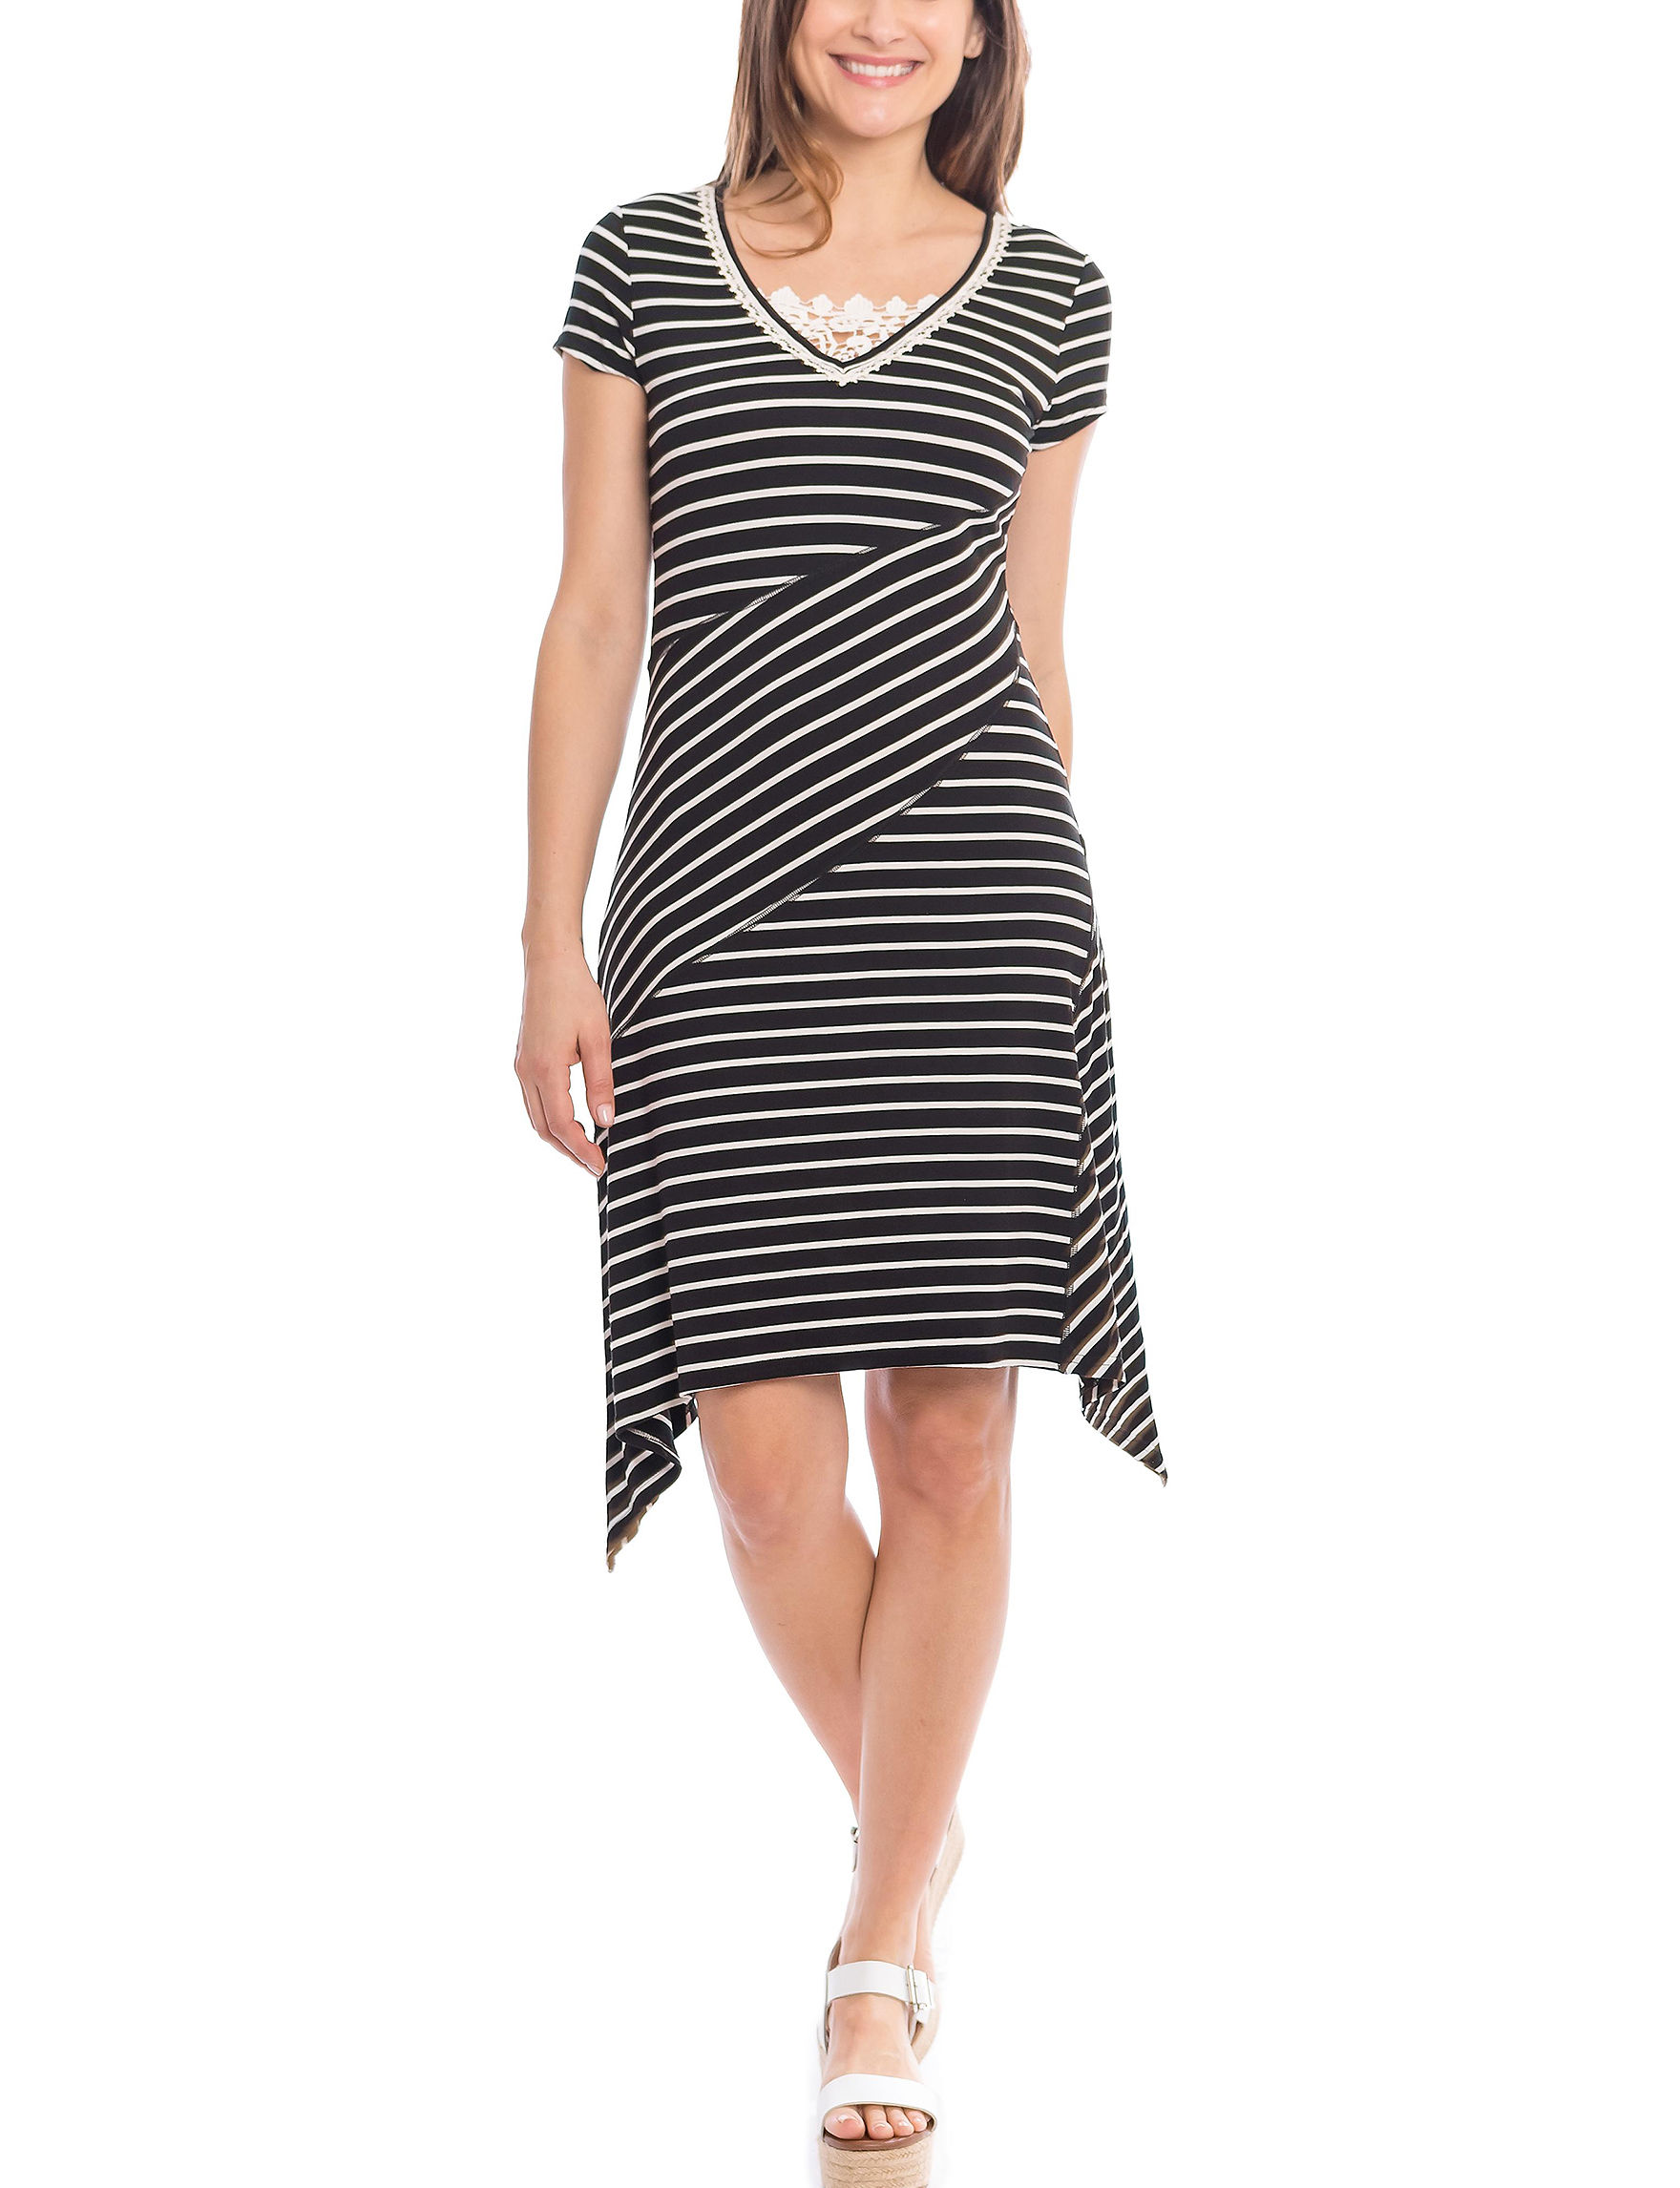 Skyes The Limit Black / White Everyday & Casual Fit & Flare Dresses